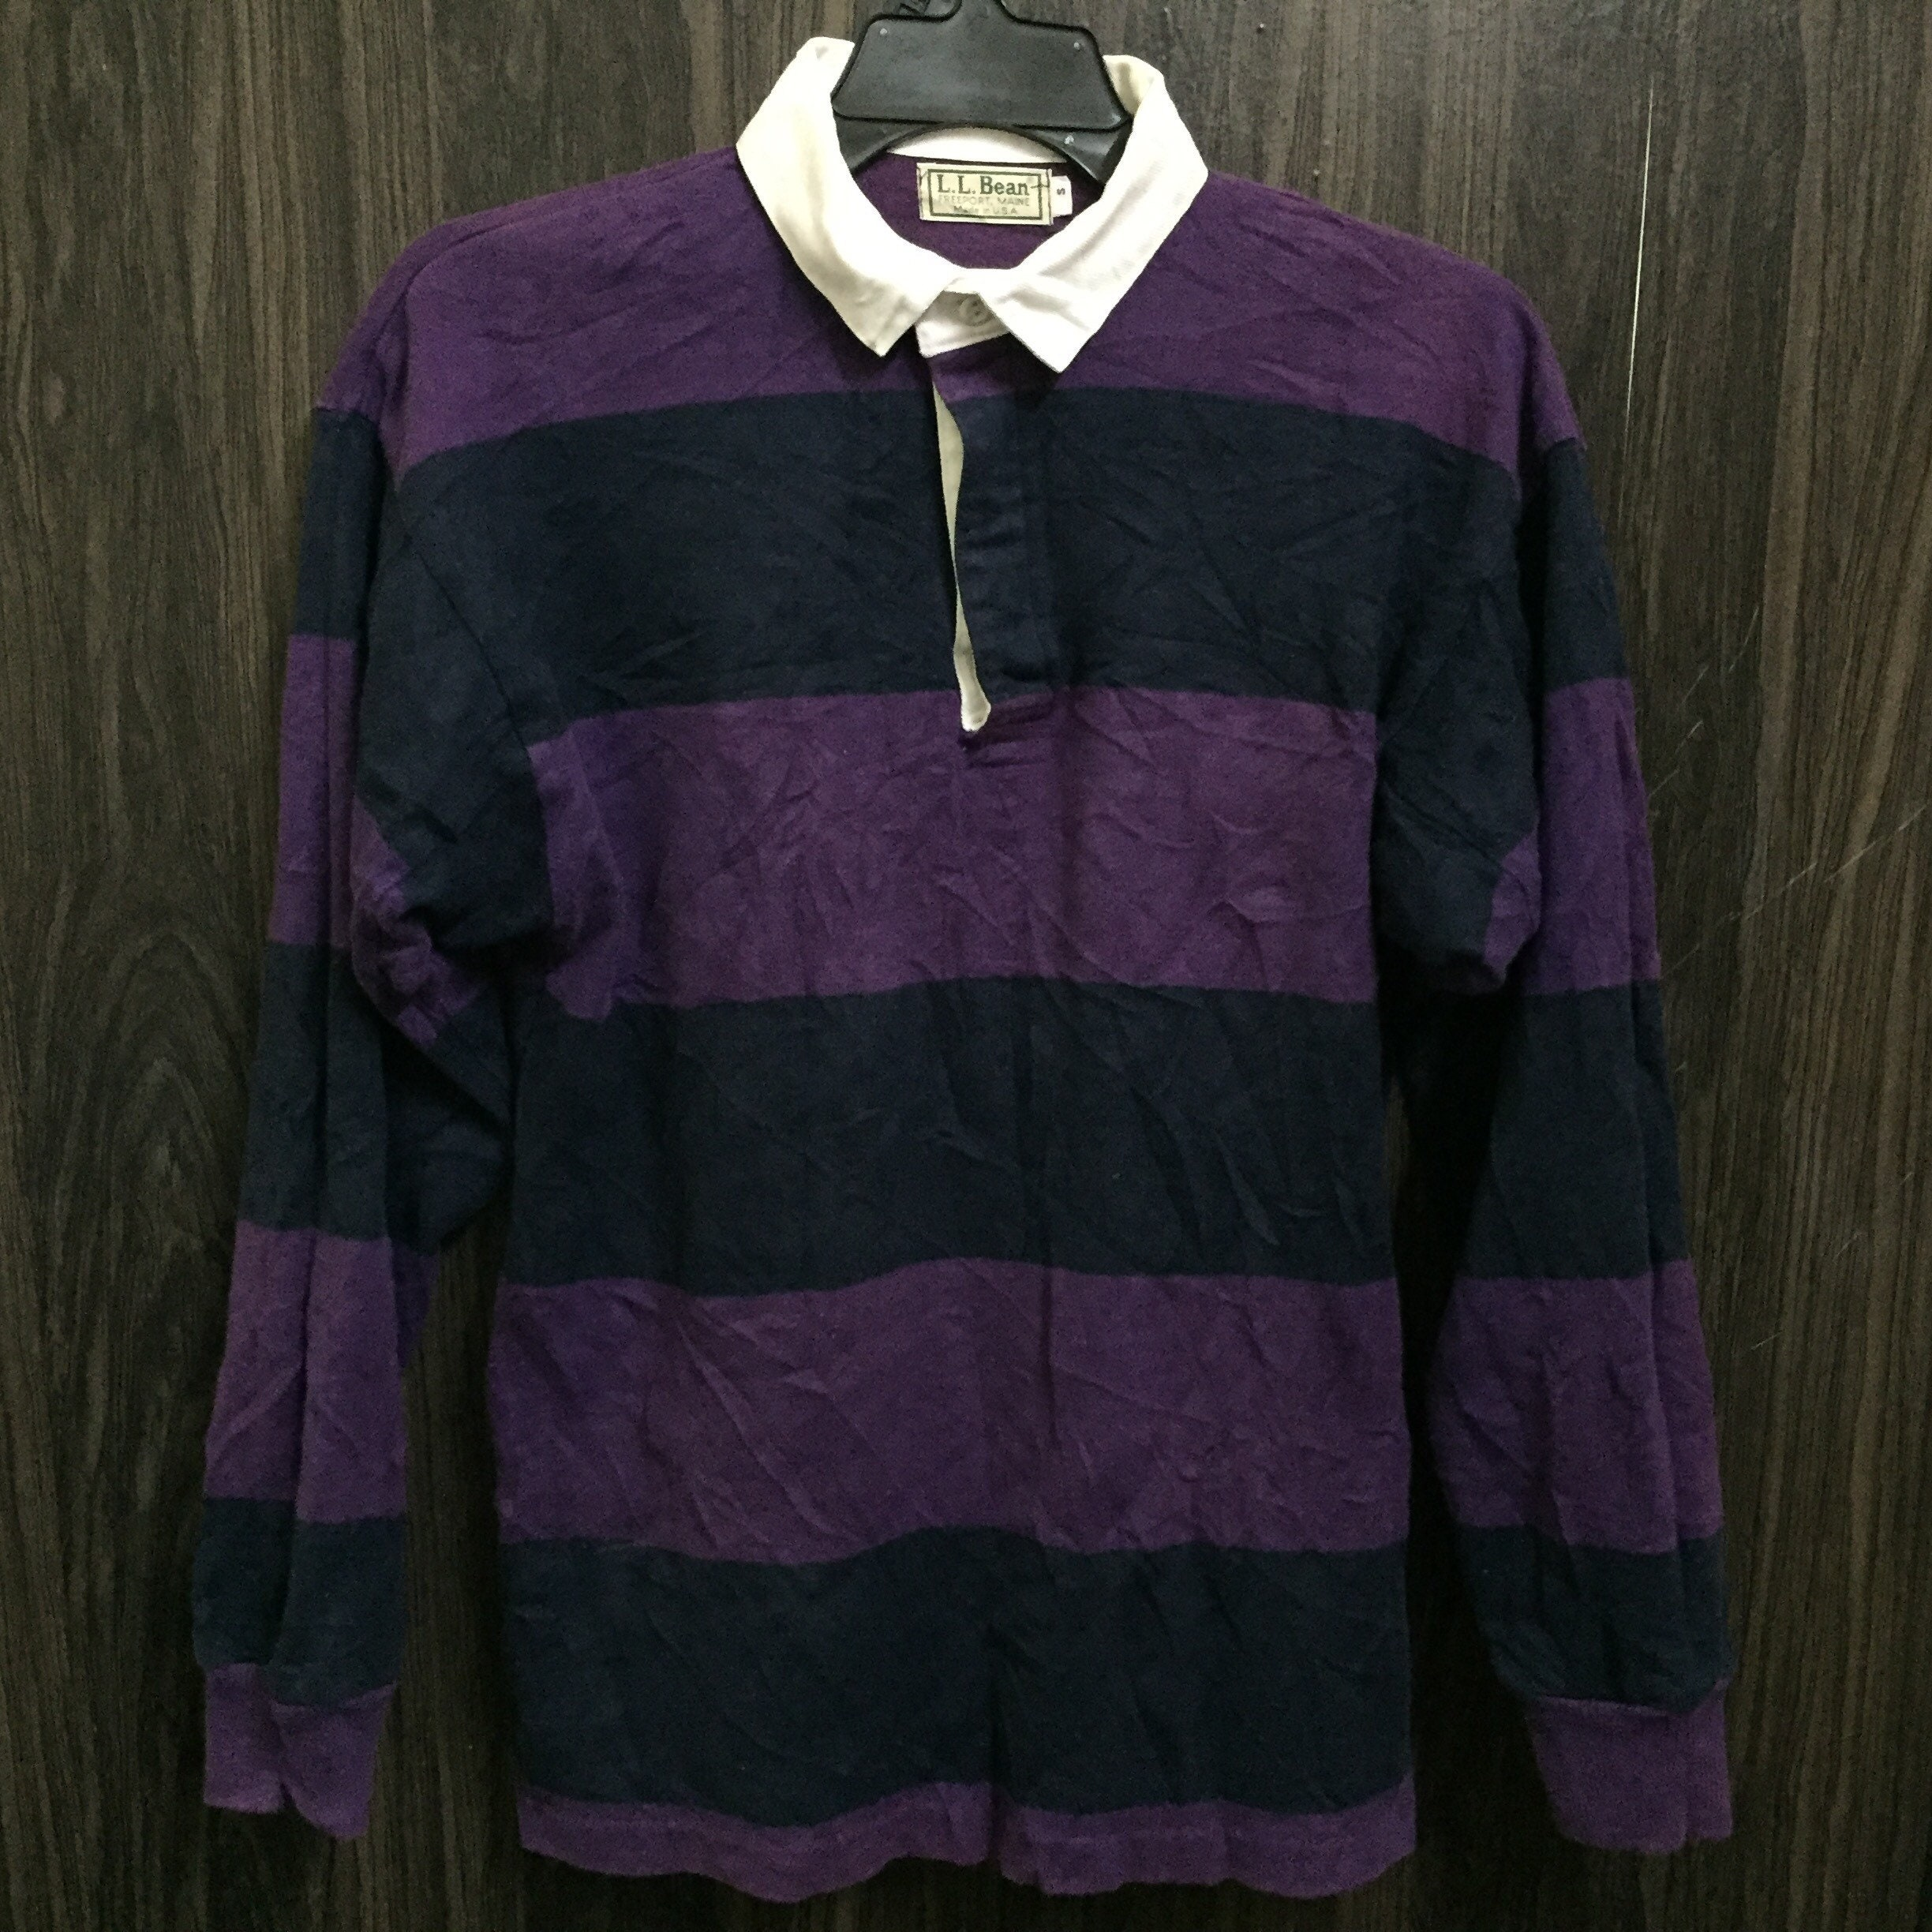 Vintage Ll Bean Rugby Style Polo Shirt Big Striped Size S Etsy